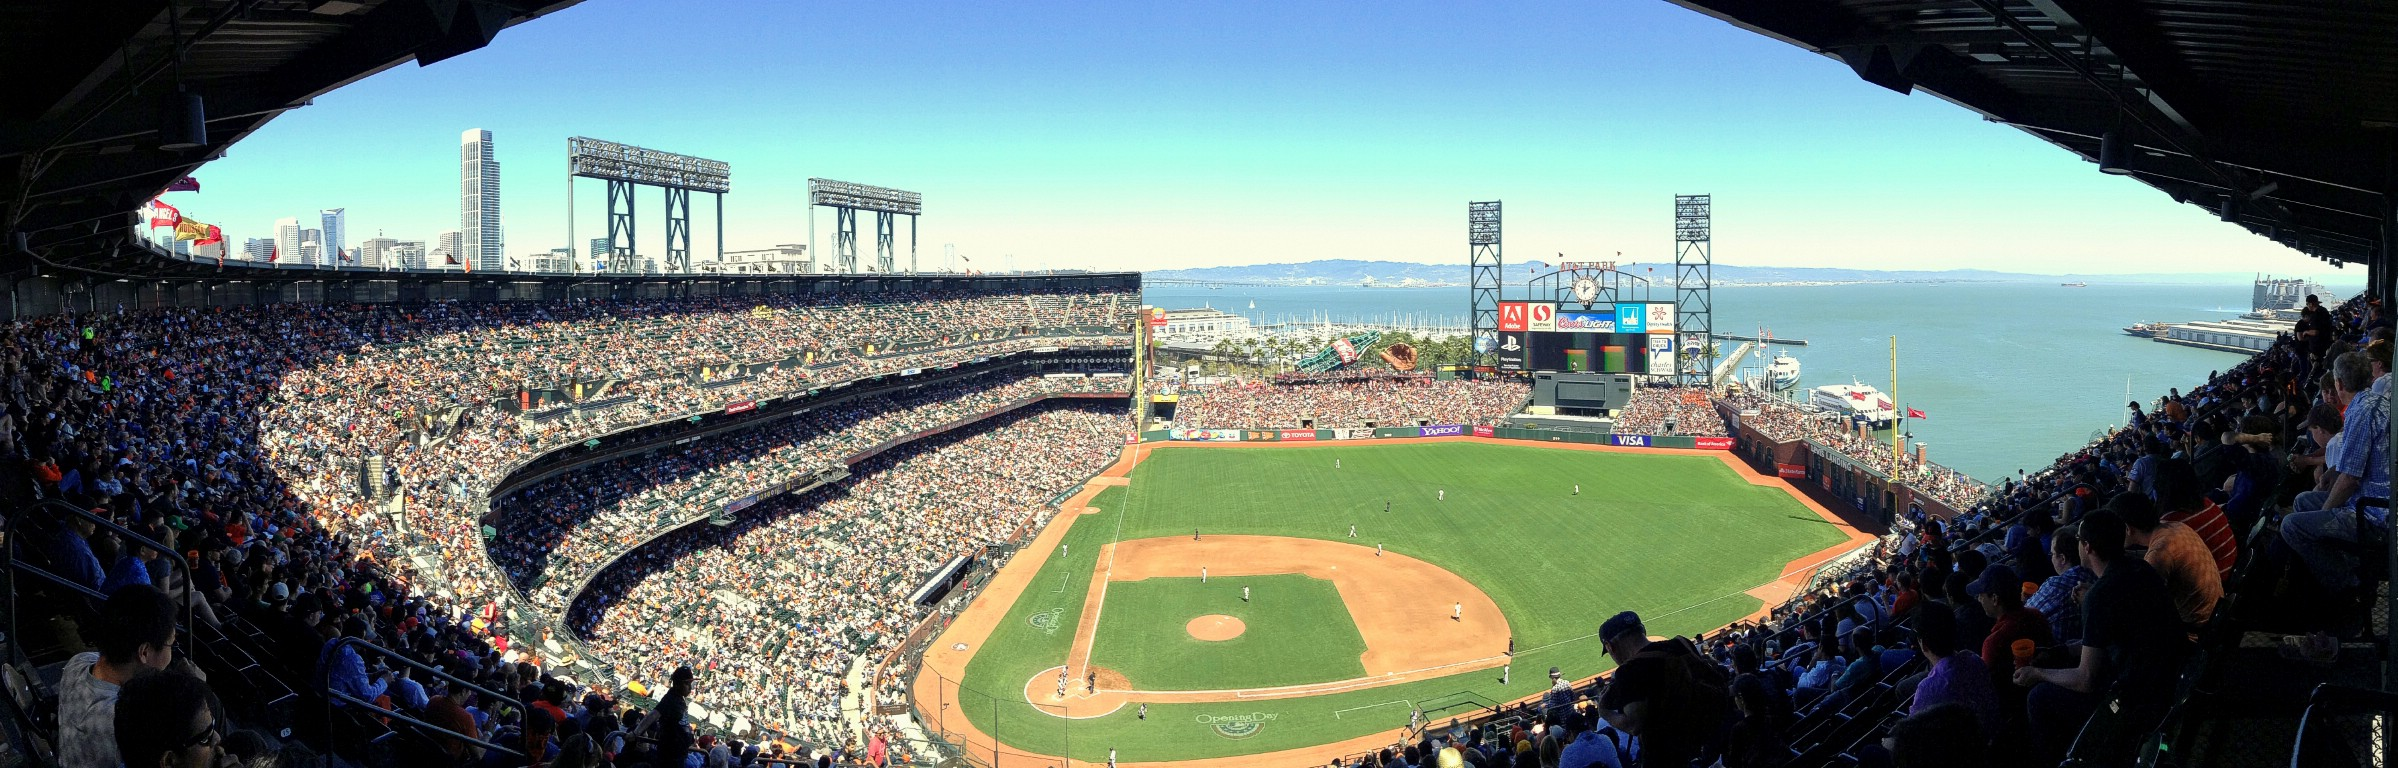 An iPod panorama from the inside of AT&T Park, home of the San Francisco Giants. San Francisco, California, USA. April 10th 2013.